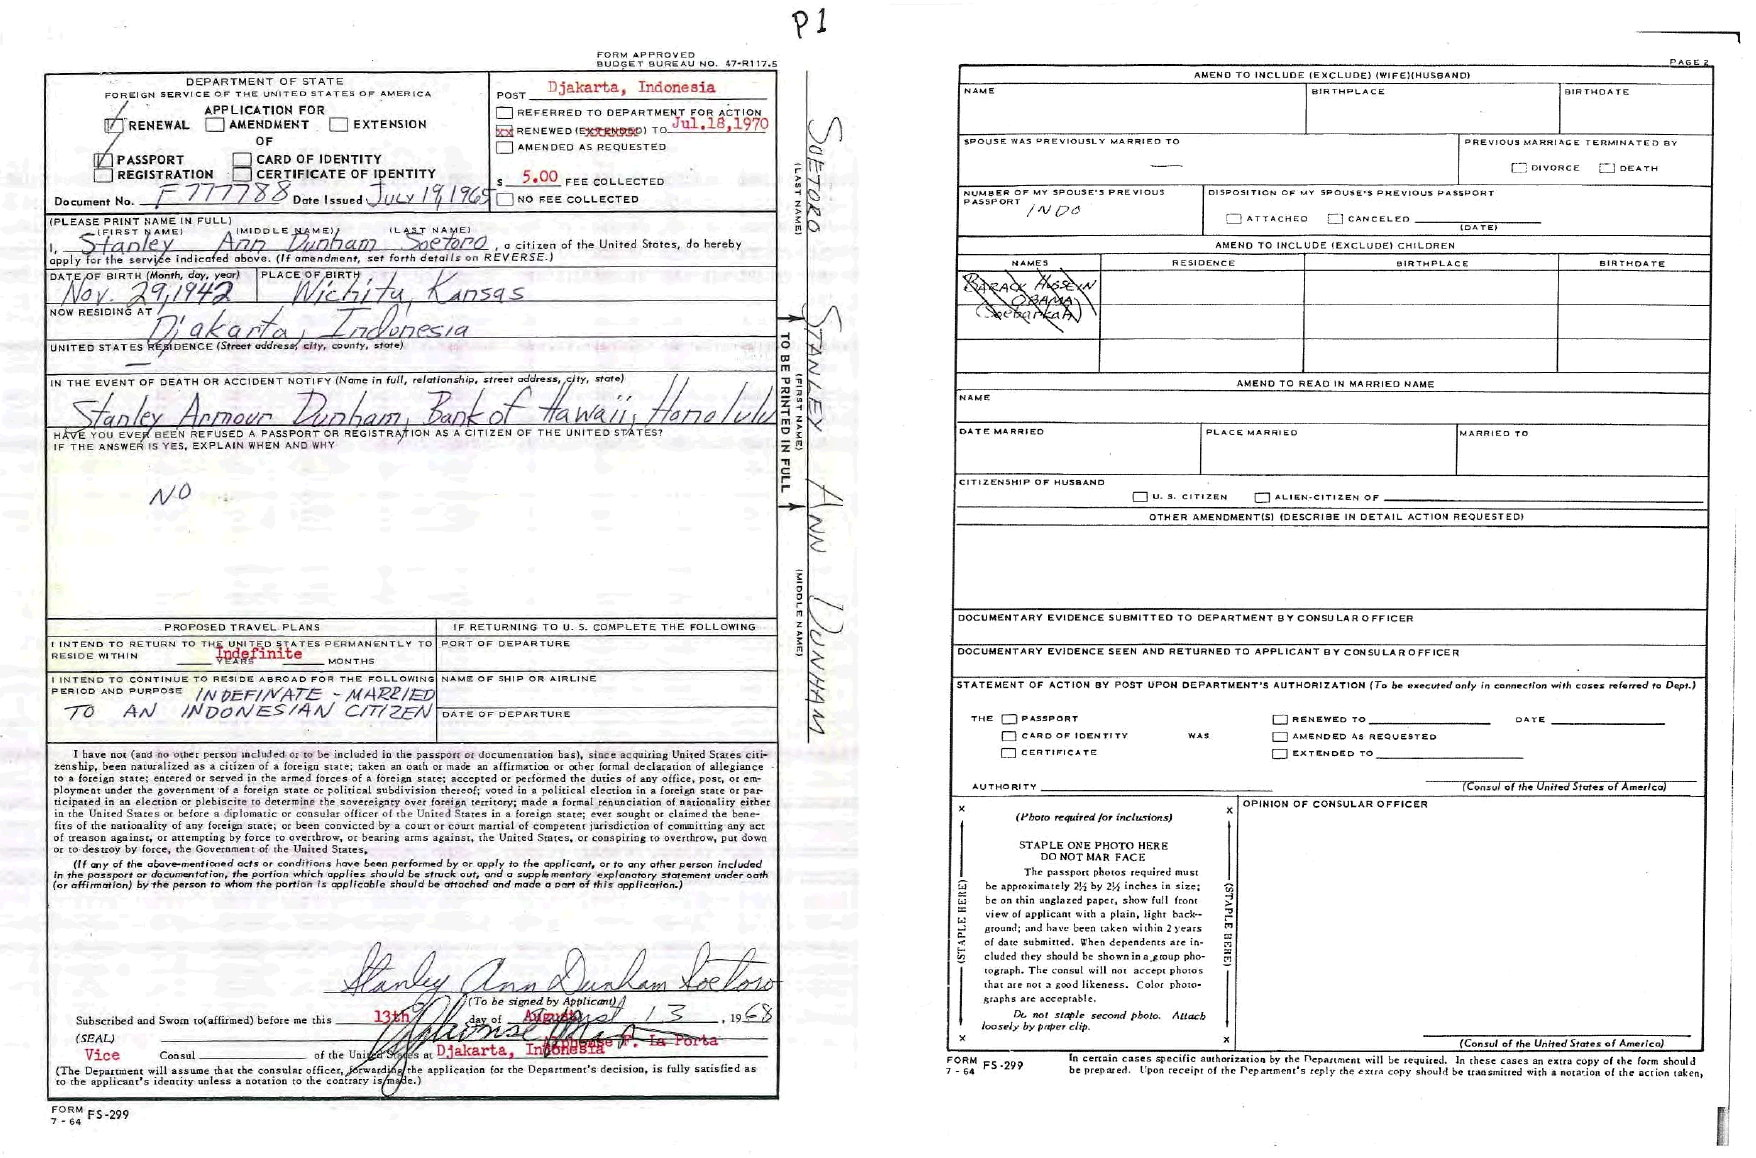 Ann-Dunham-Soetoro-1968-Passport-Renewal-Application